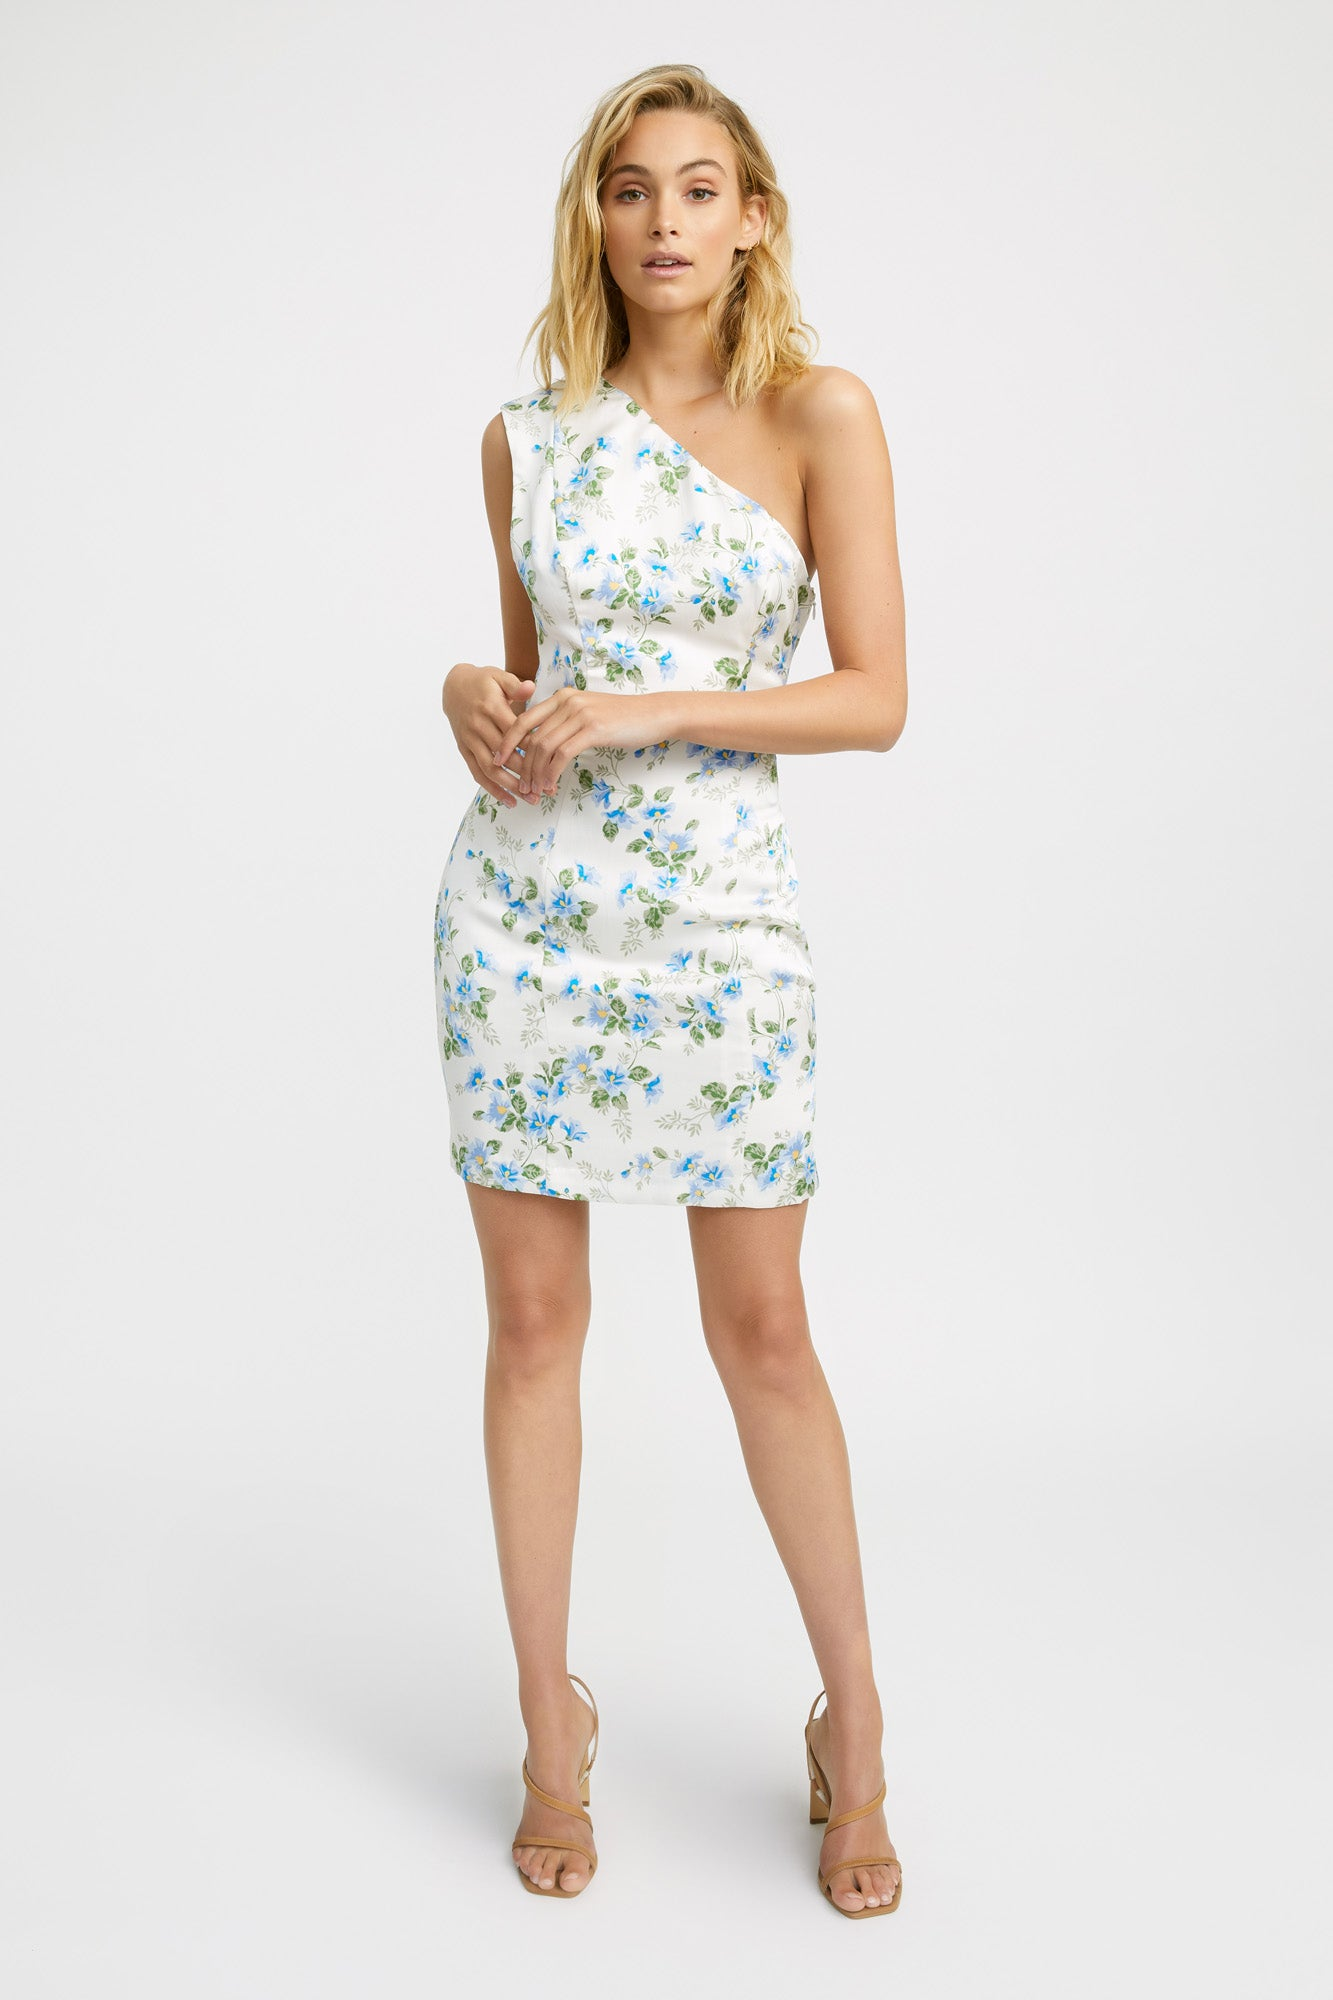 kookai categorypath:Printed  searchable:floral  searchable:printed  categorypath:Mini  searchable:mini  searchable:above the knee searchable:evening  searchable:formal  searchable:cocktail dresses